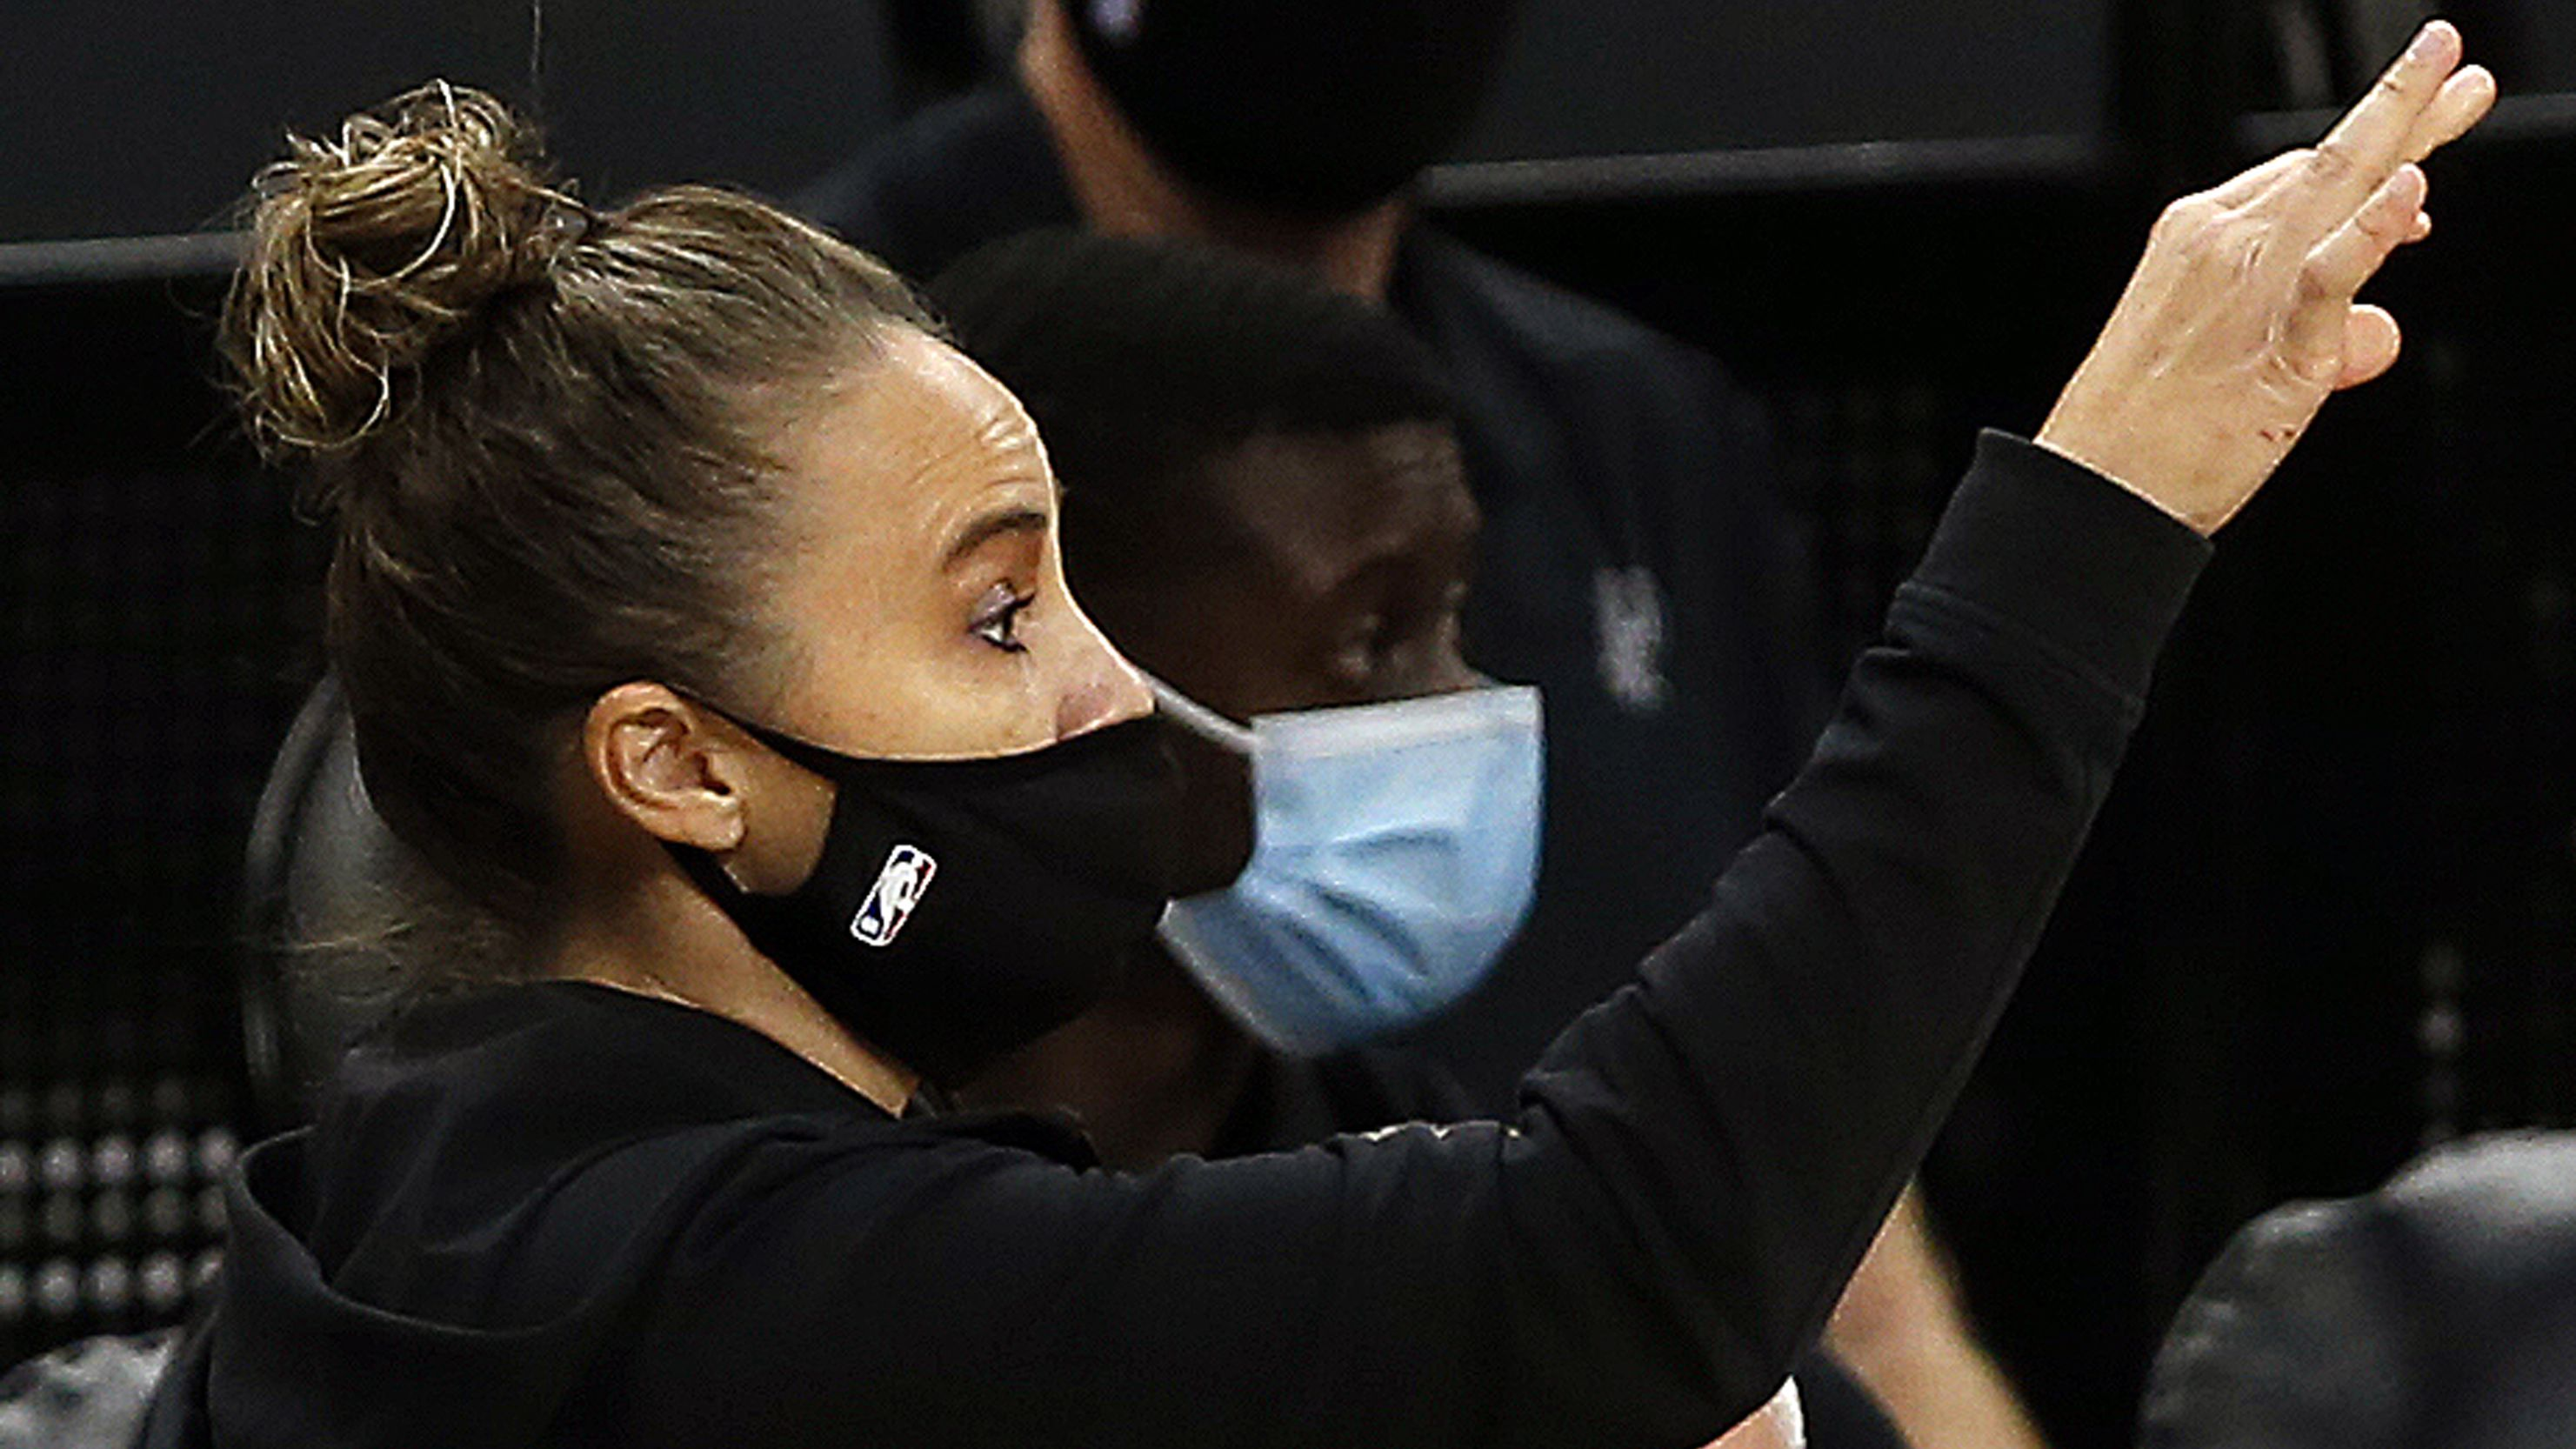 Becky Hammon of the San Antonio Spurs took over head coach duties.